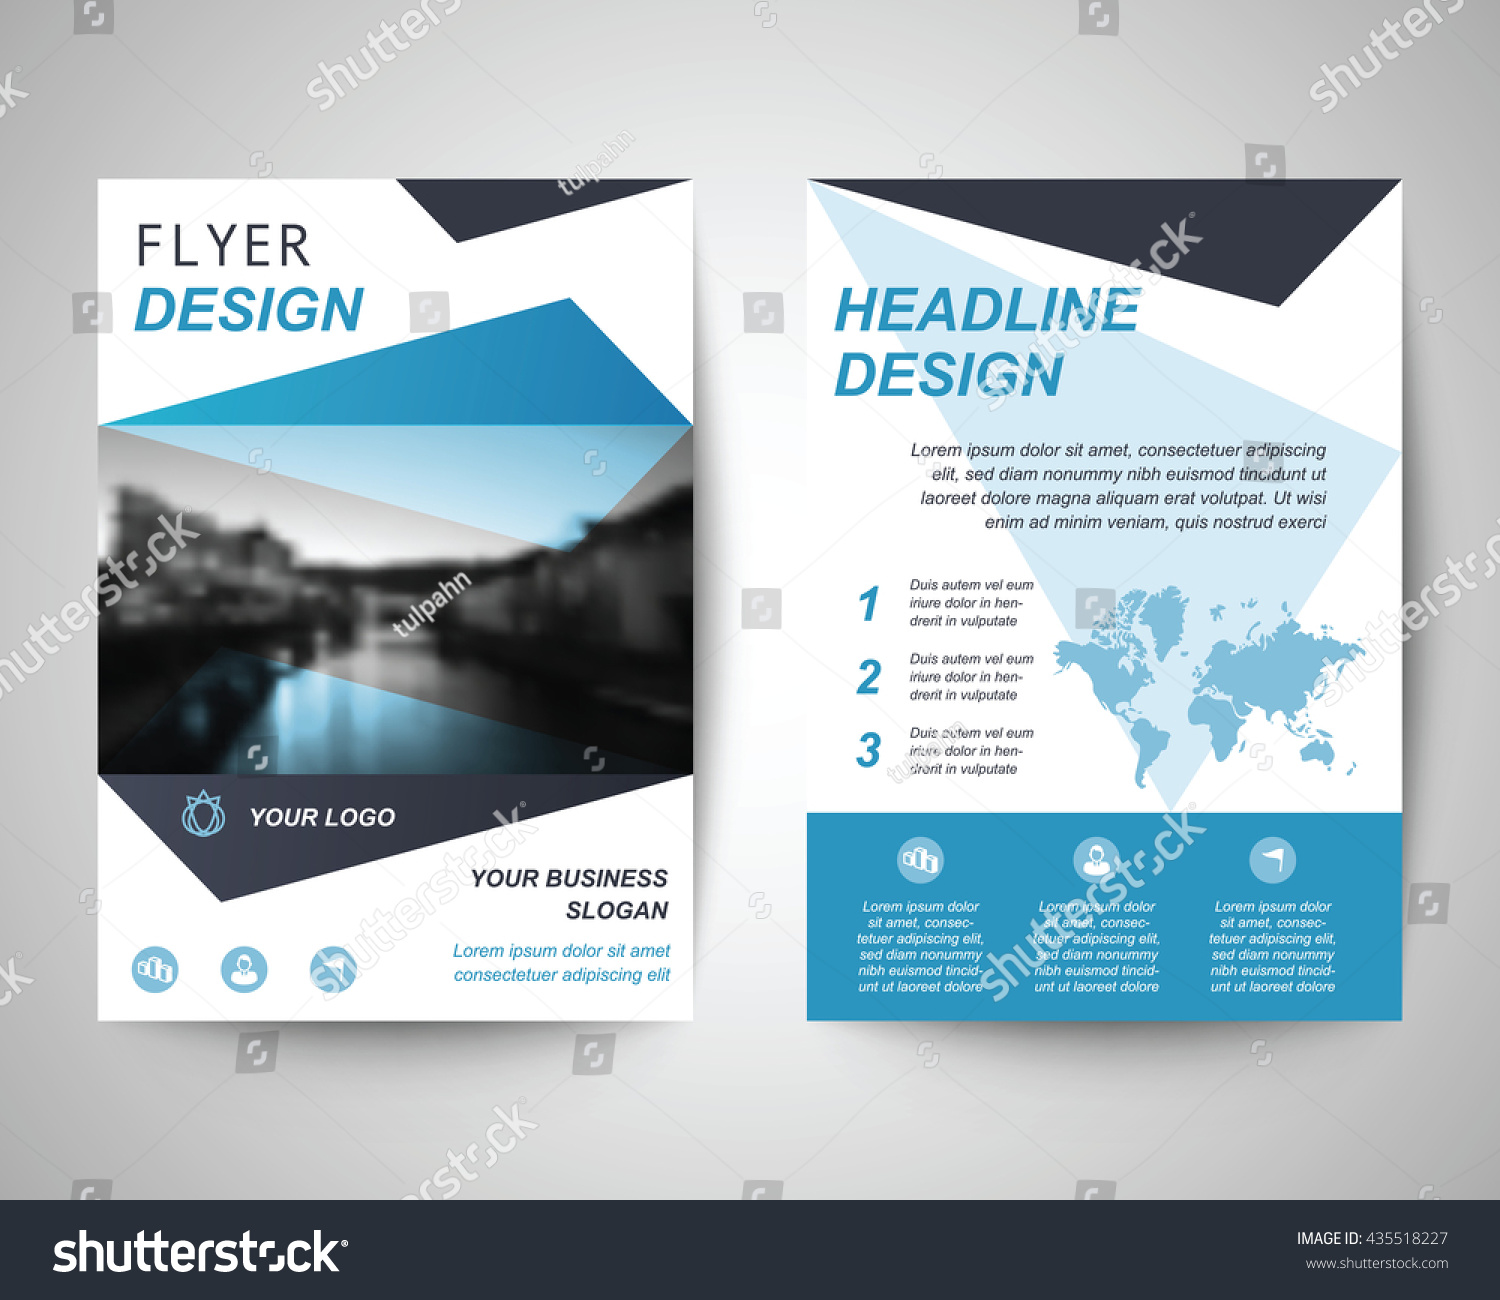 royalty blue abstract flyer layout template  blue abstract flyer layout template brochure background leaflet cover vector design in a4 size for business annual report stock vector